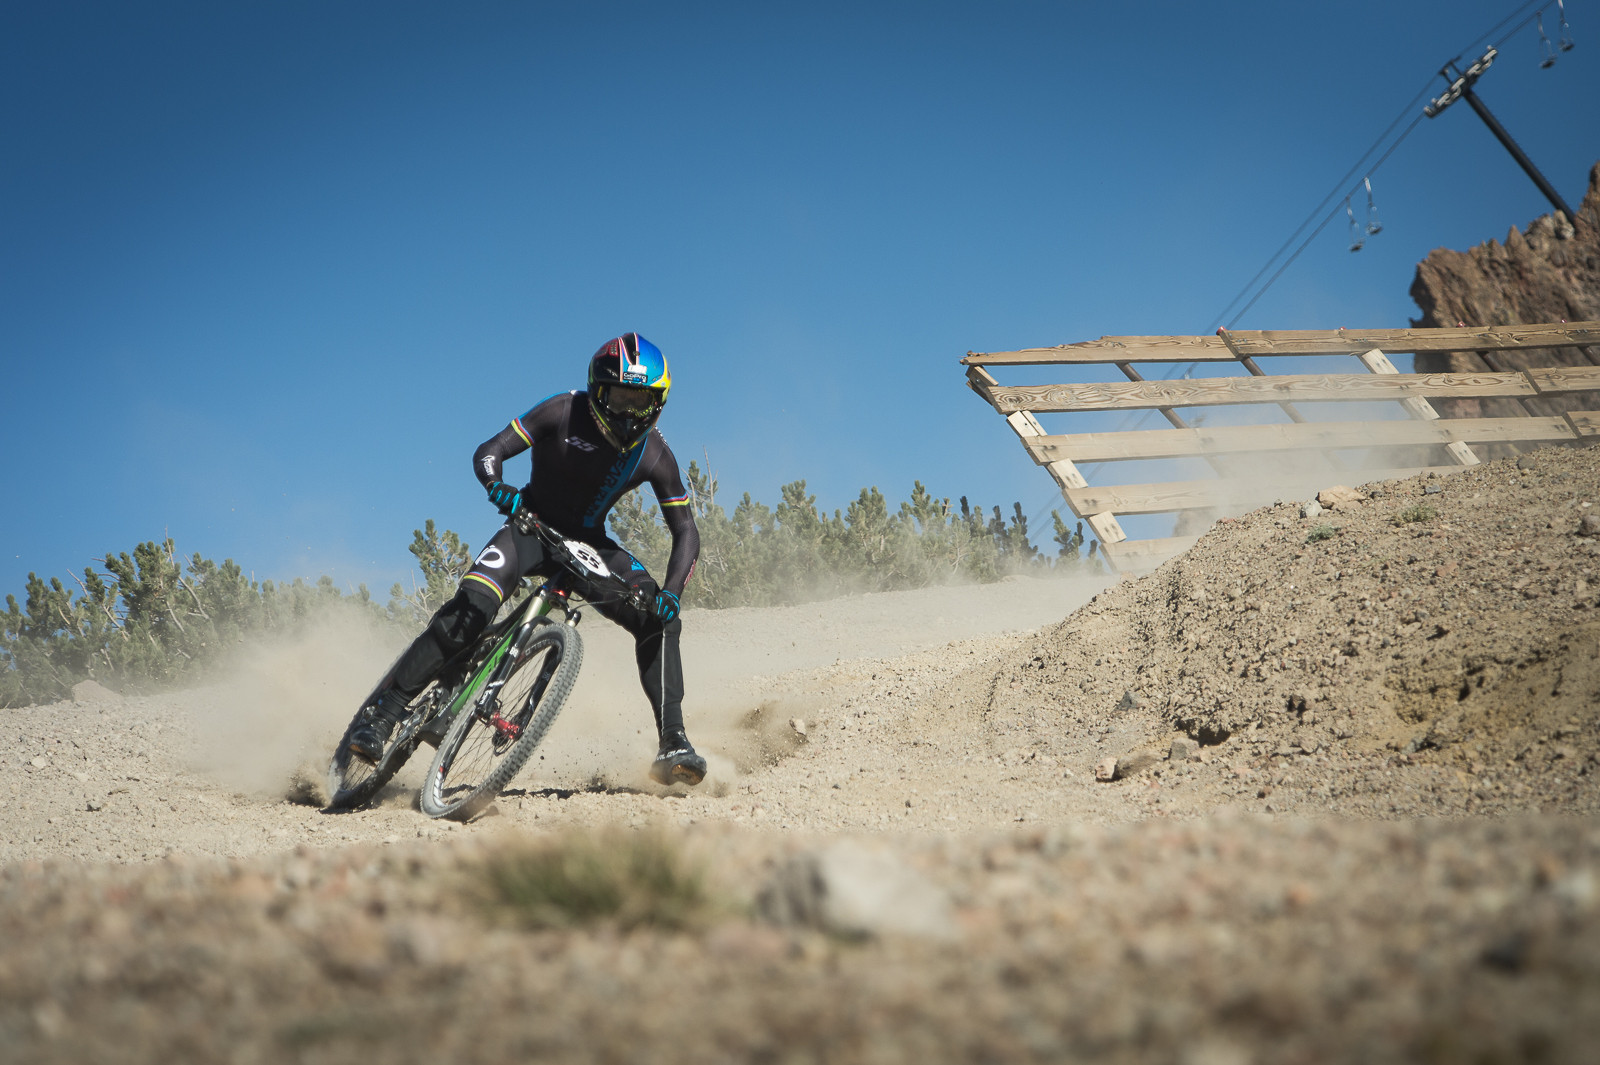 LEGENDS OF THE KAMIKAZE PHOTO GALLERY - Brian Lopes Takes the Win! - Ian Collins - Mountain Biking Pictures - Vital MTB